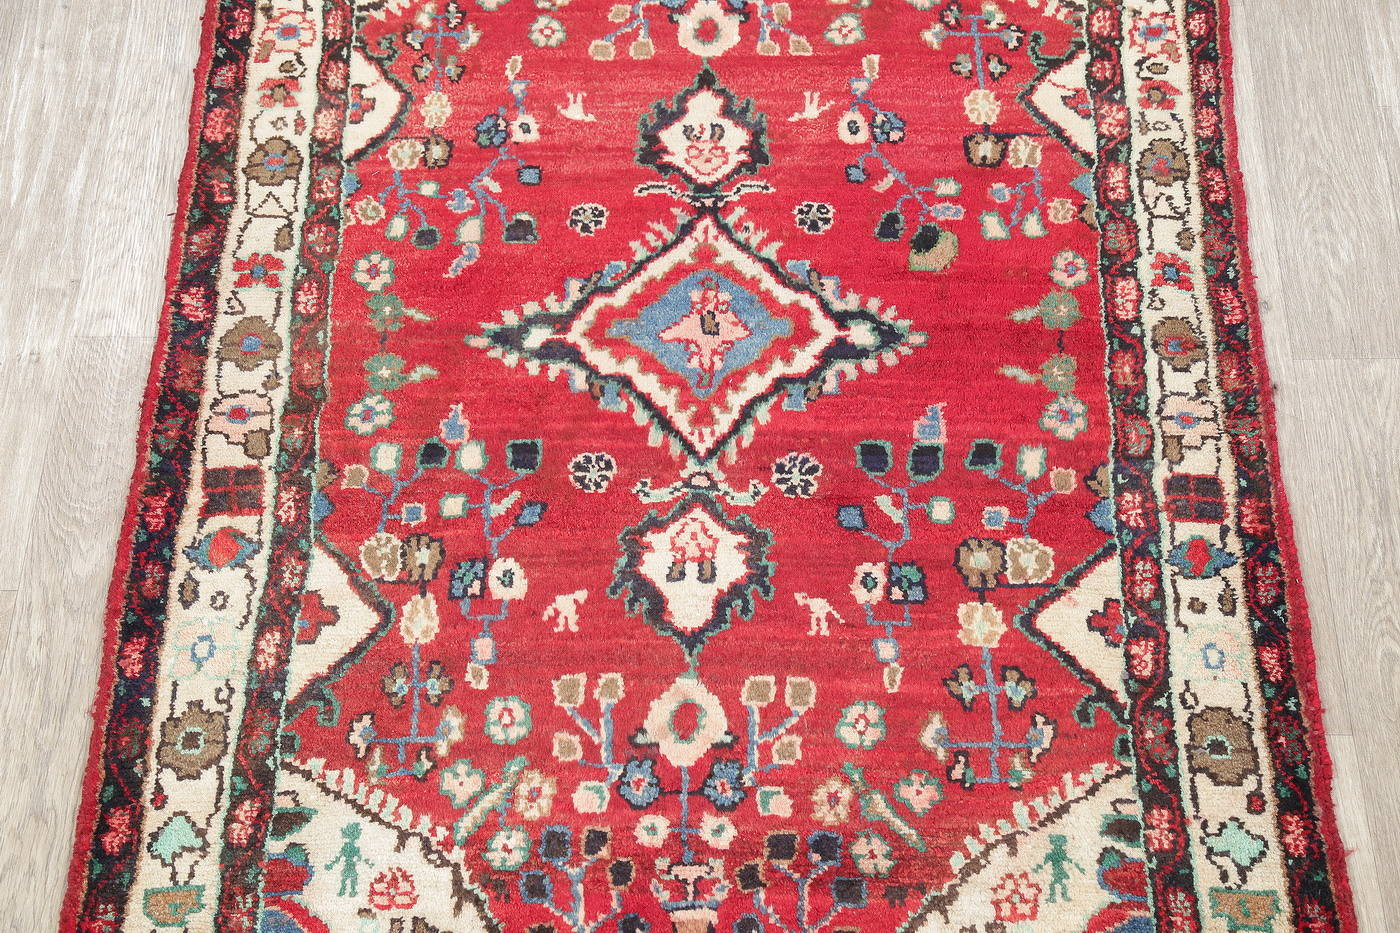 Hand-Knotted Red Floral Hamedan Persian Area Rug Wool 4x7